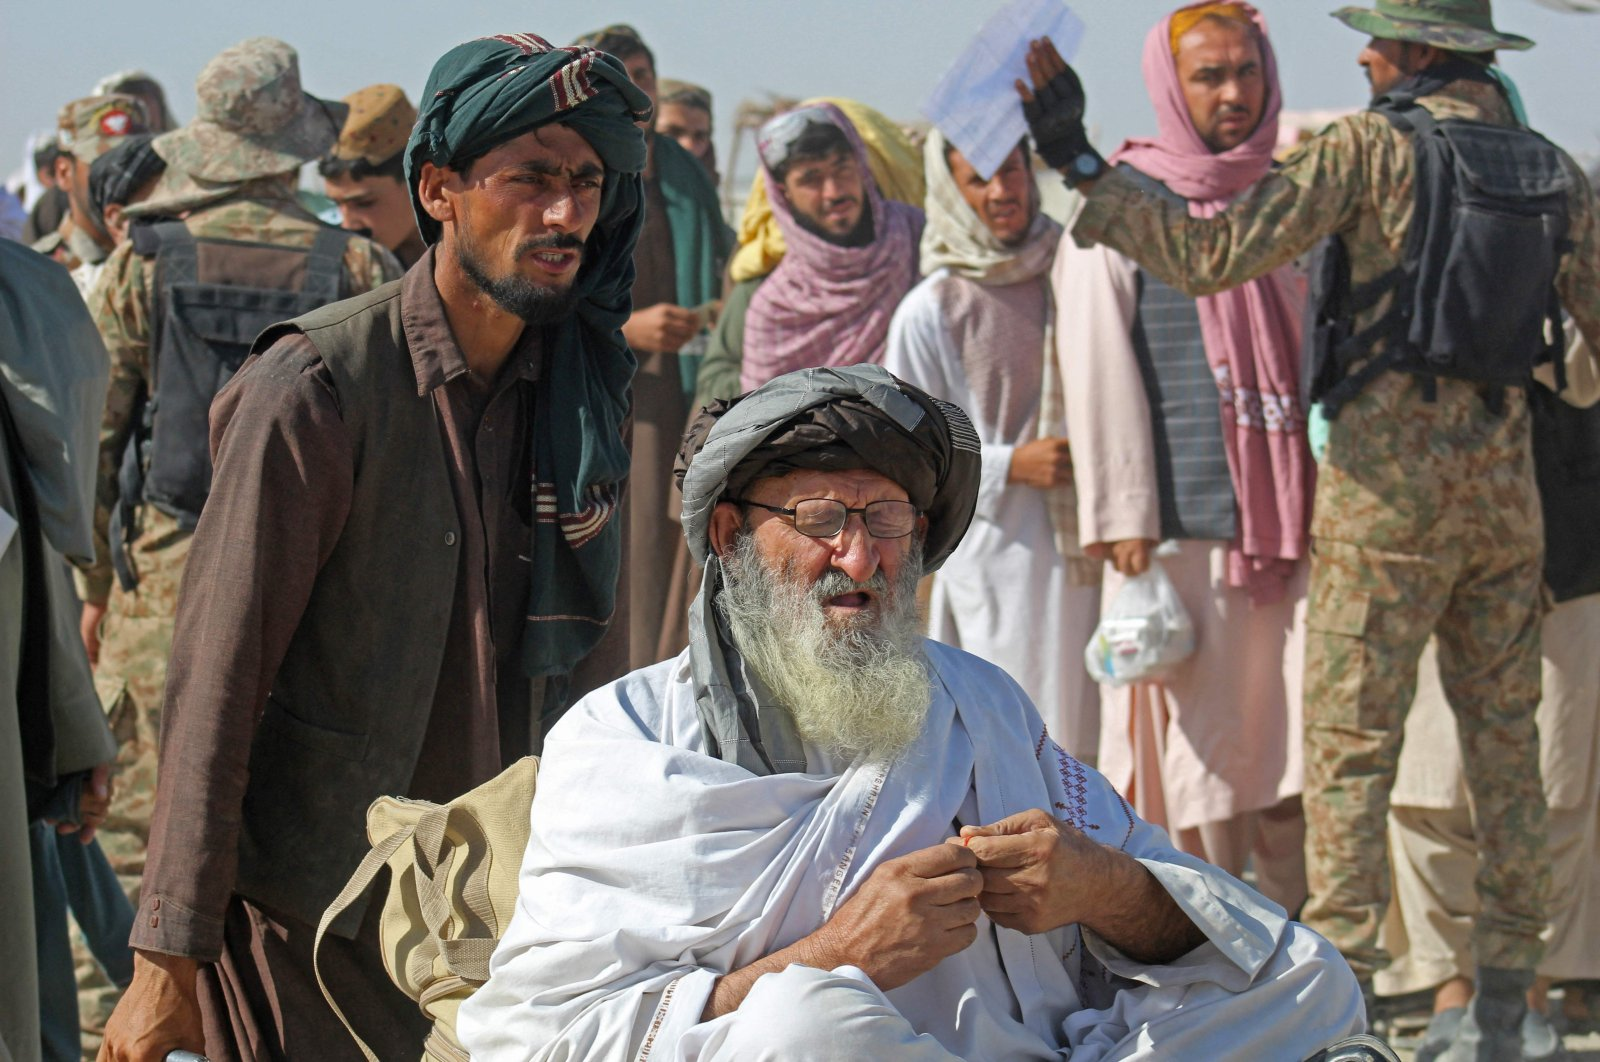 Afghan nationals arrive at the Pakistan-Afghanistan border crossing point in Chaman to return to Afghanistan, Aug. 22, 2021, following the Taliban's stunning takeover of Afghanistan. (AFP Photo)